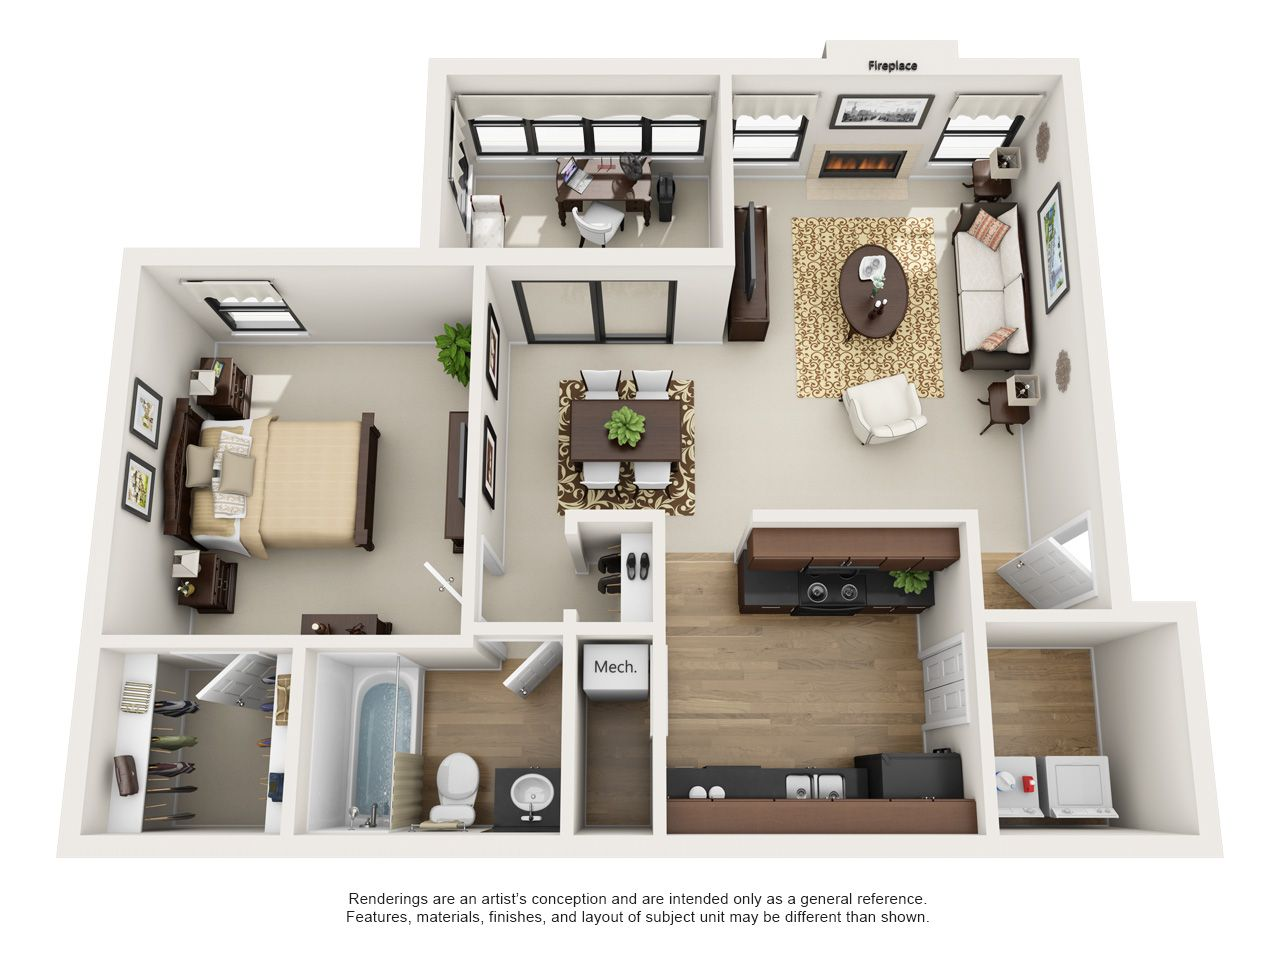 One And Two Bedroom Apartment Floor Plans Rosemont At East Cobb Marietta Georgia Apa Small Apartment Floor Plans Apartment Floor Plans Apartment Layout